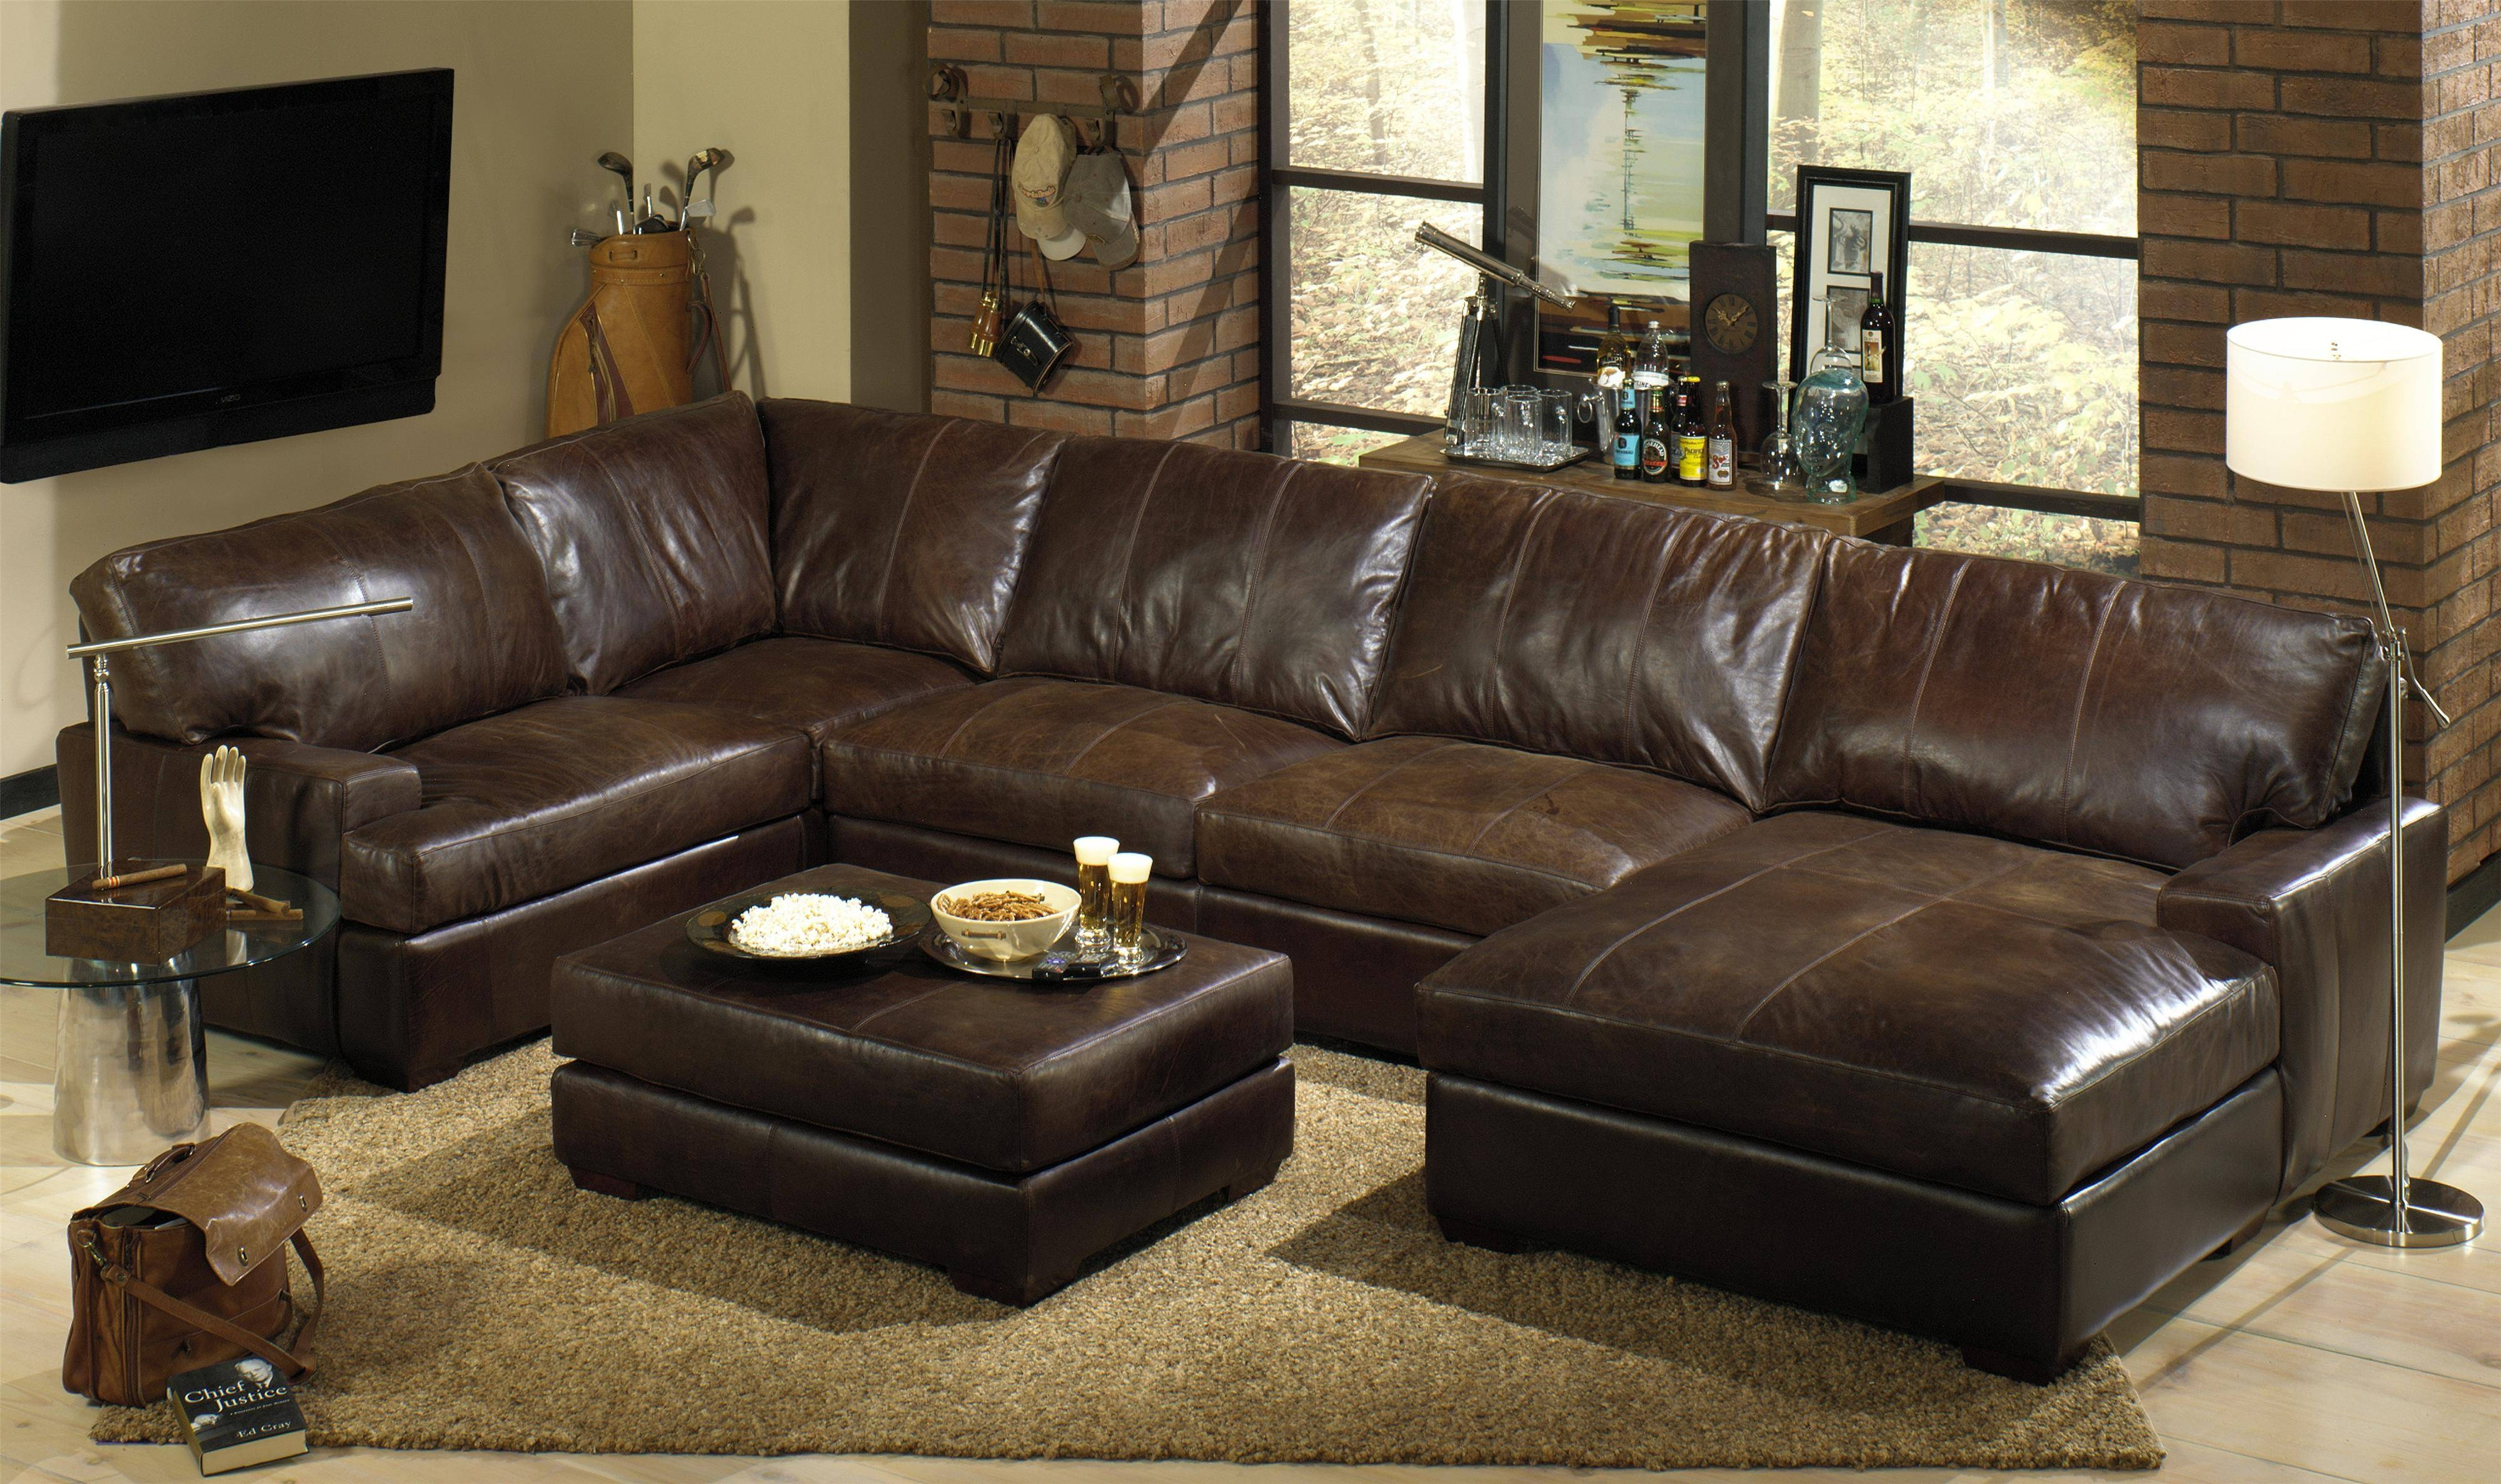 6 Piece Leather Sectional Sofa - Hotelsbacau with regard to 6 Piece Leather Sectional Sofa (Image 2 of 30)